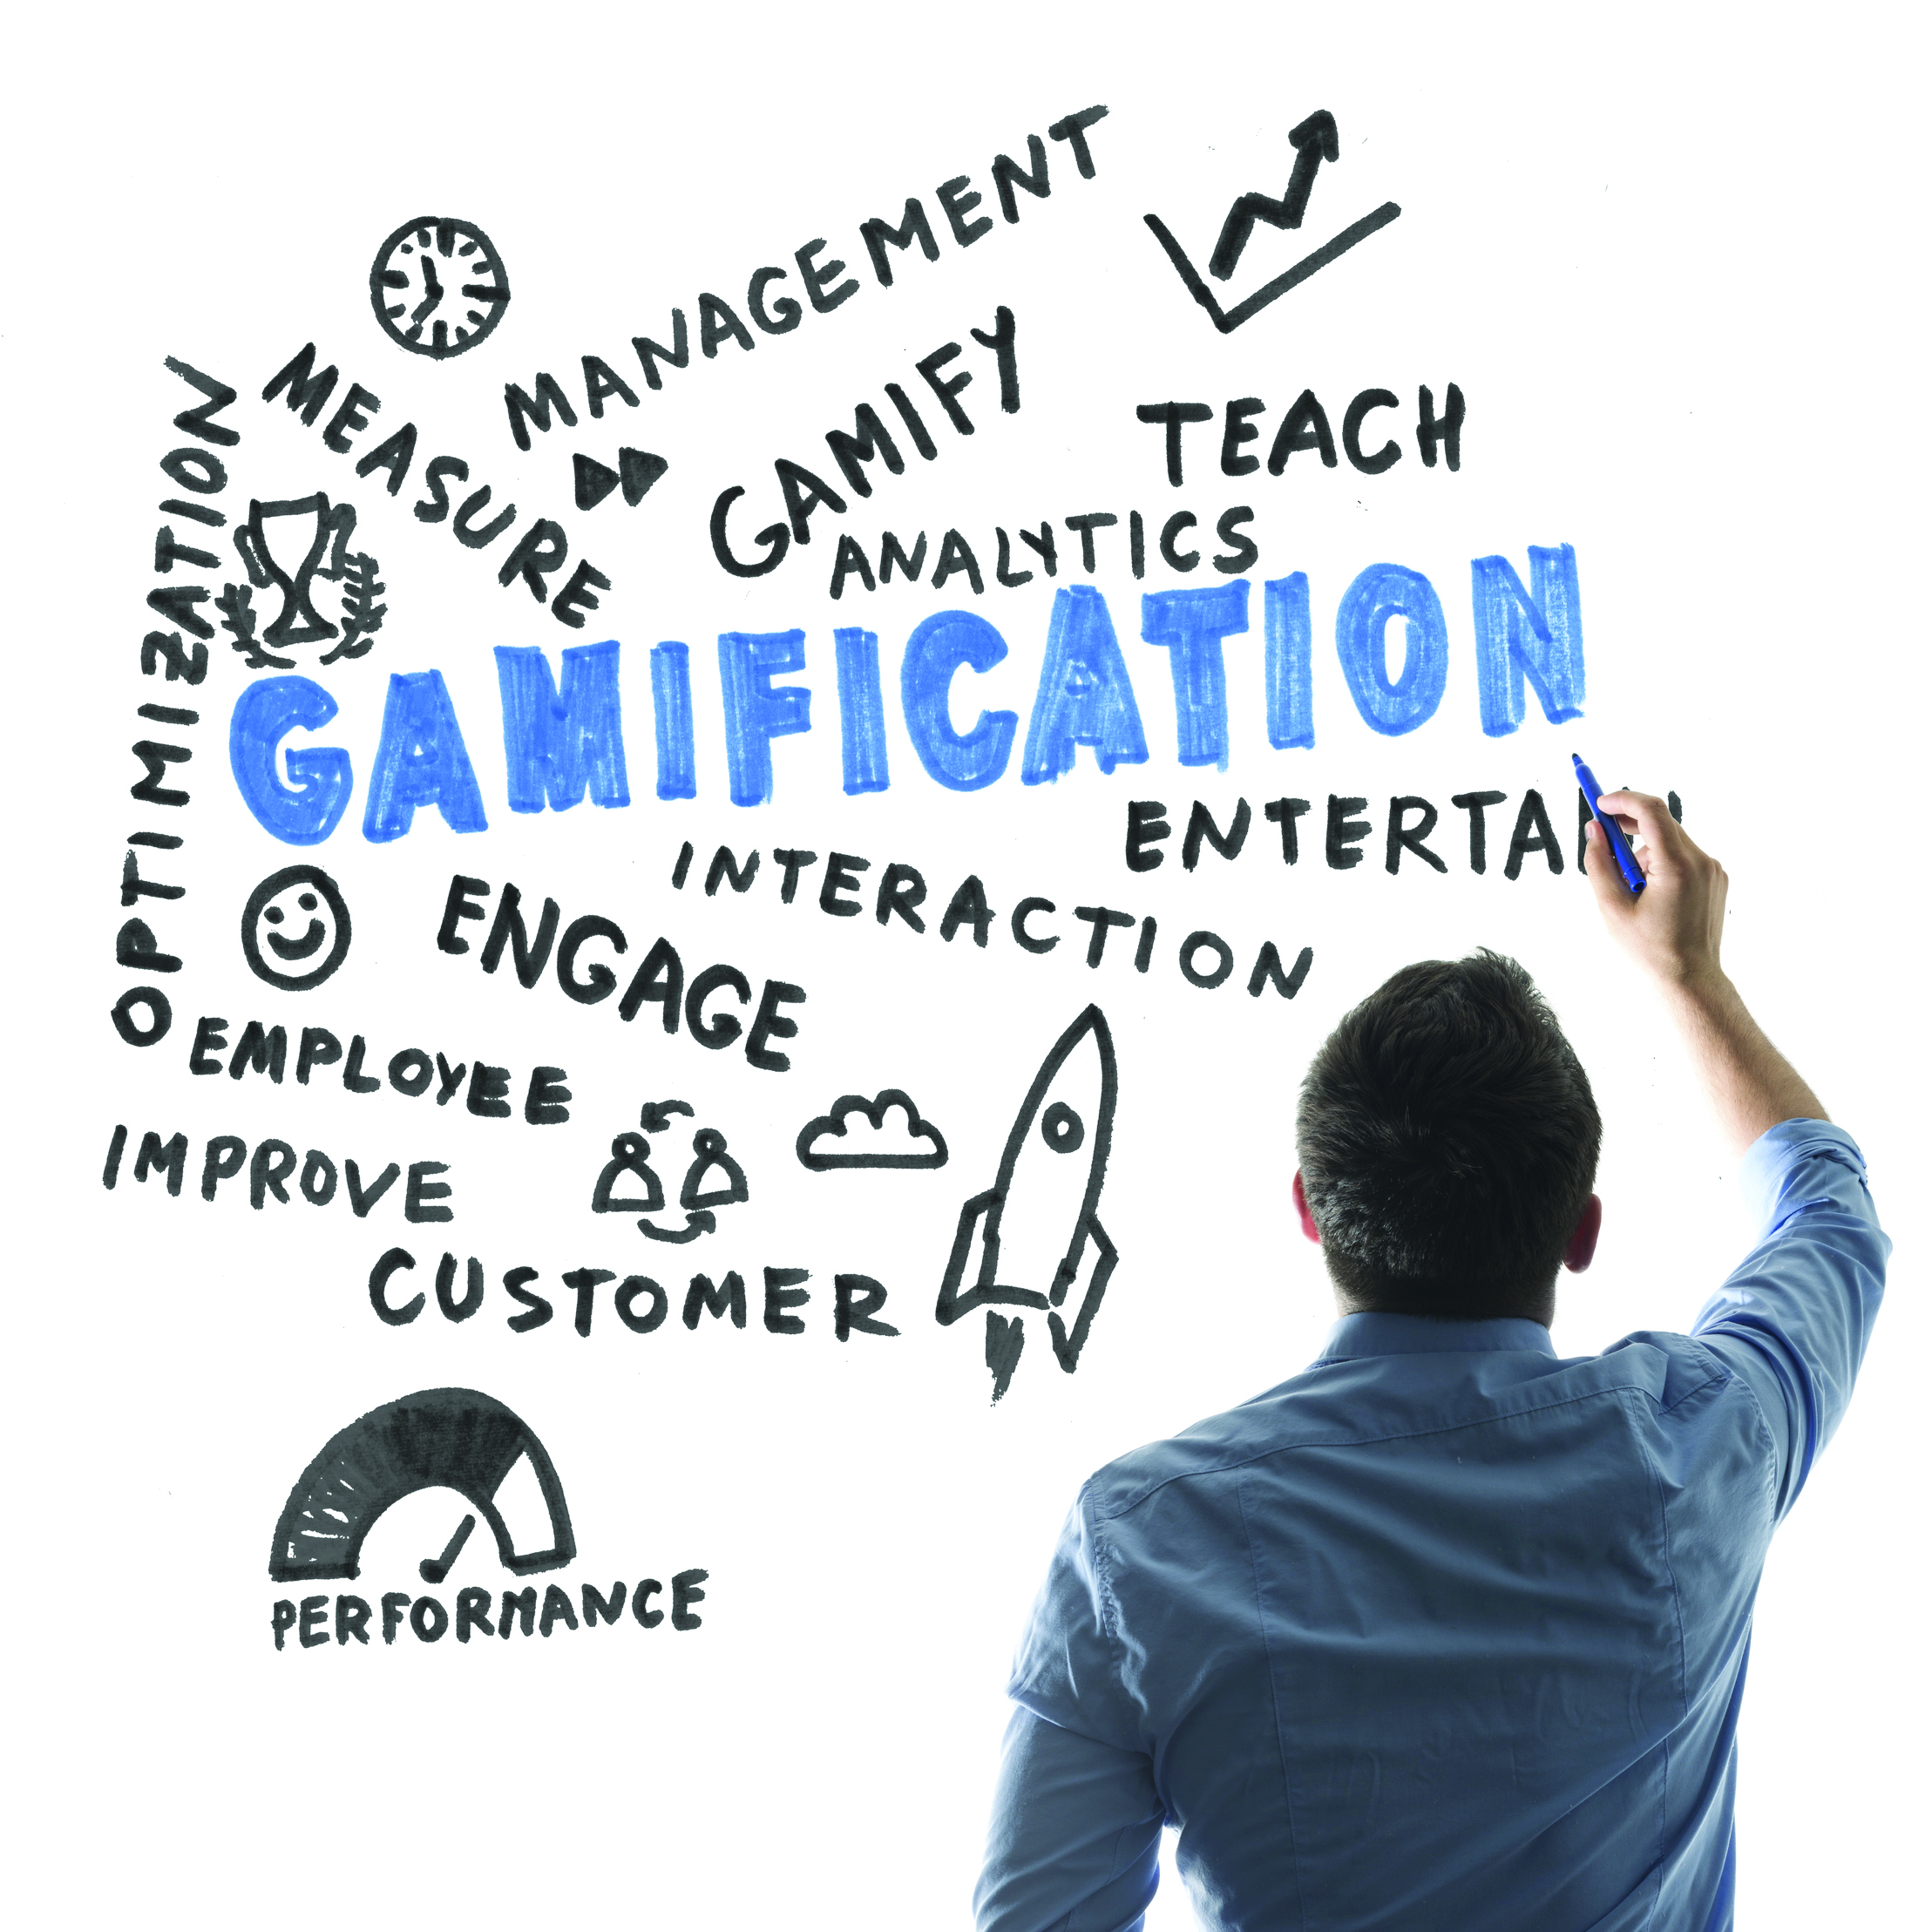 Car Rental Q&A: How Can Gamification Work for my Company?